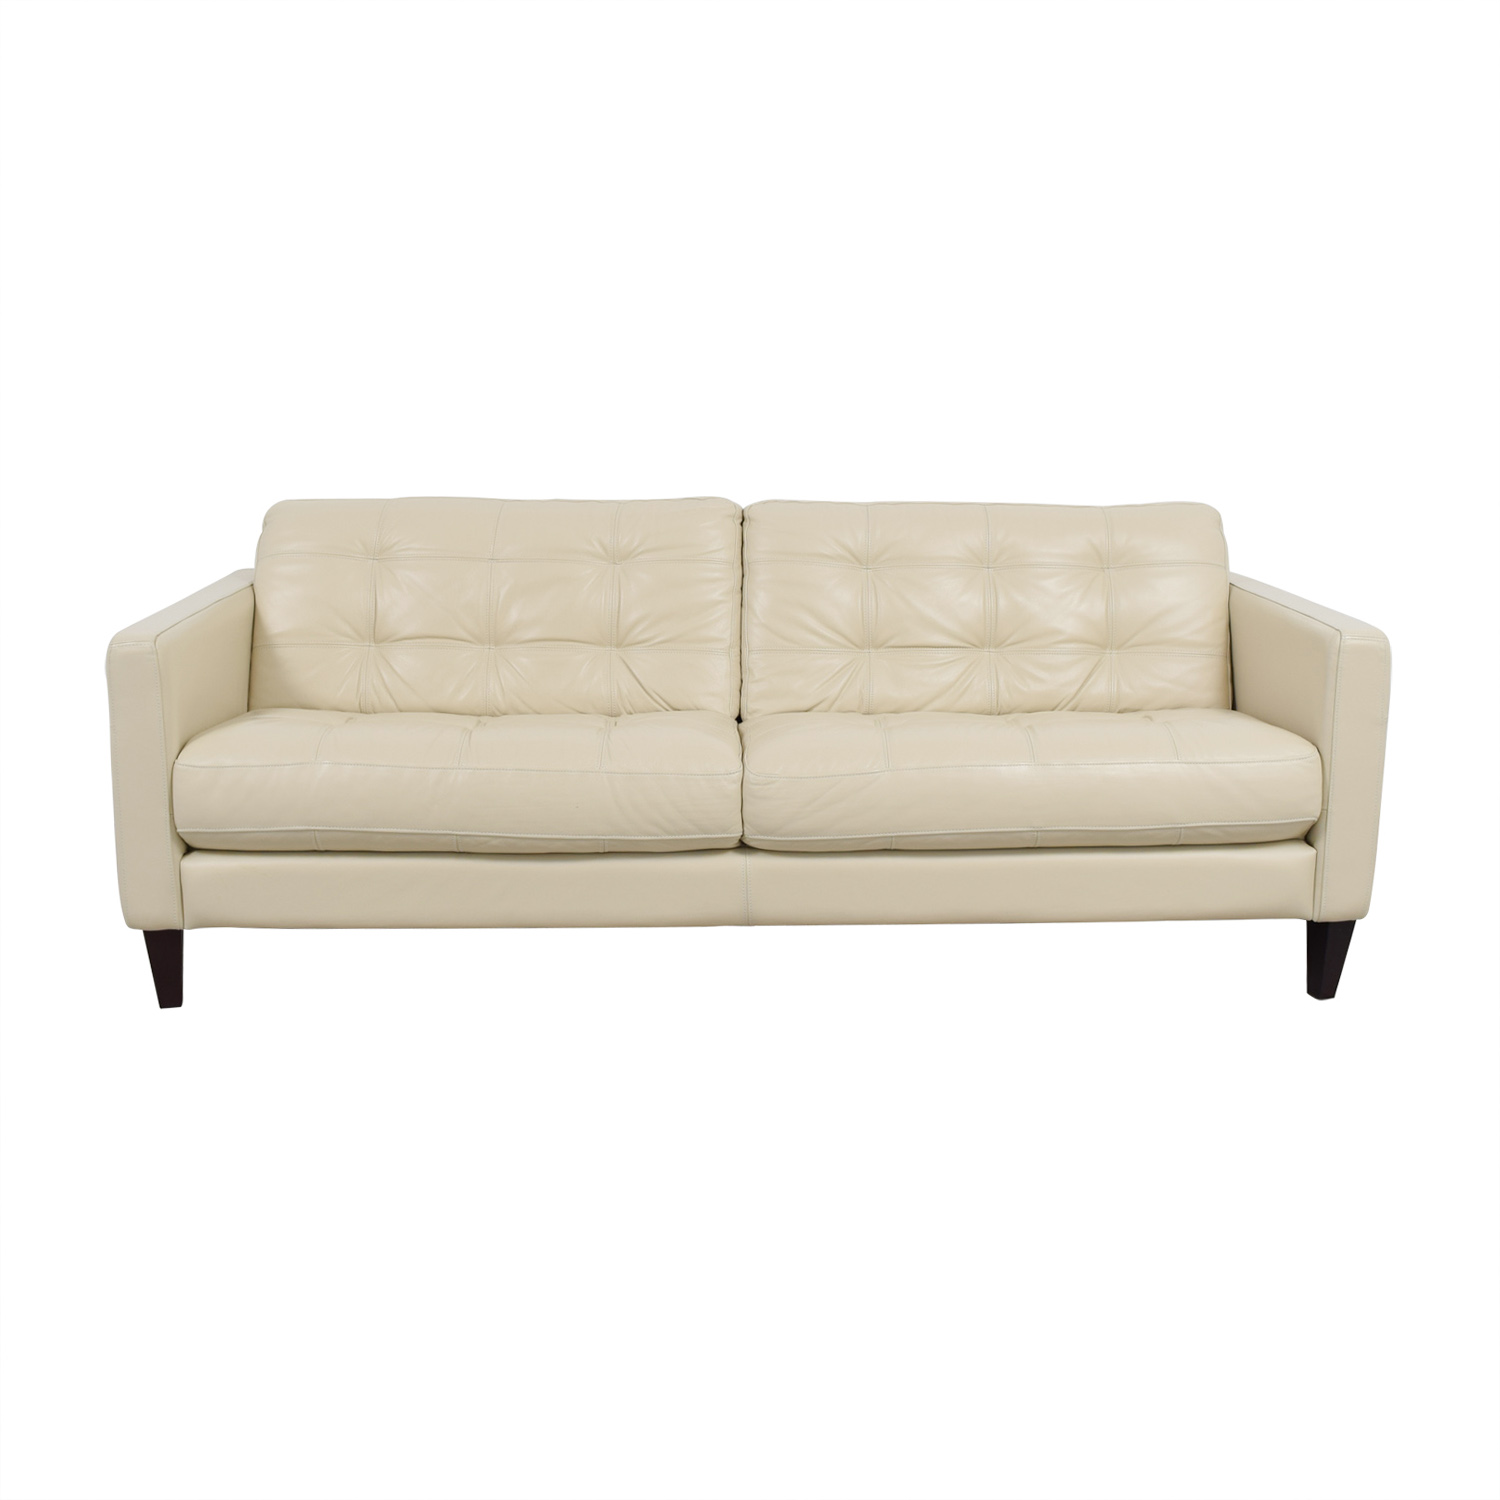 buy Macys Macys White Leather Tufted Sofa online